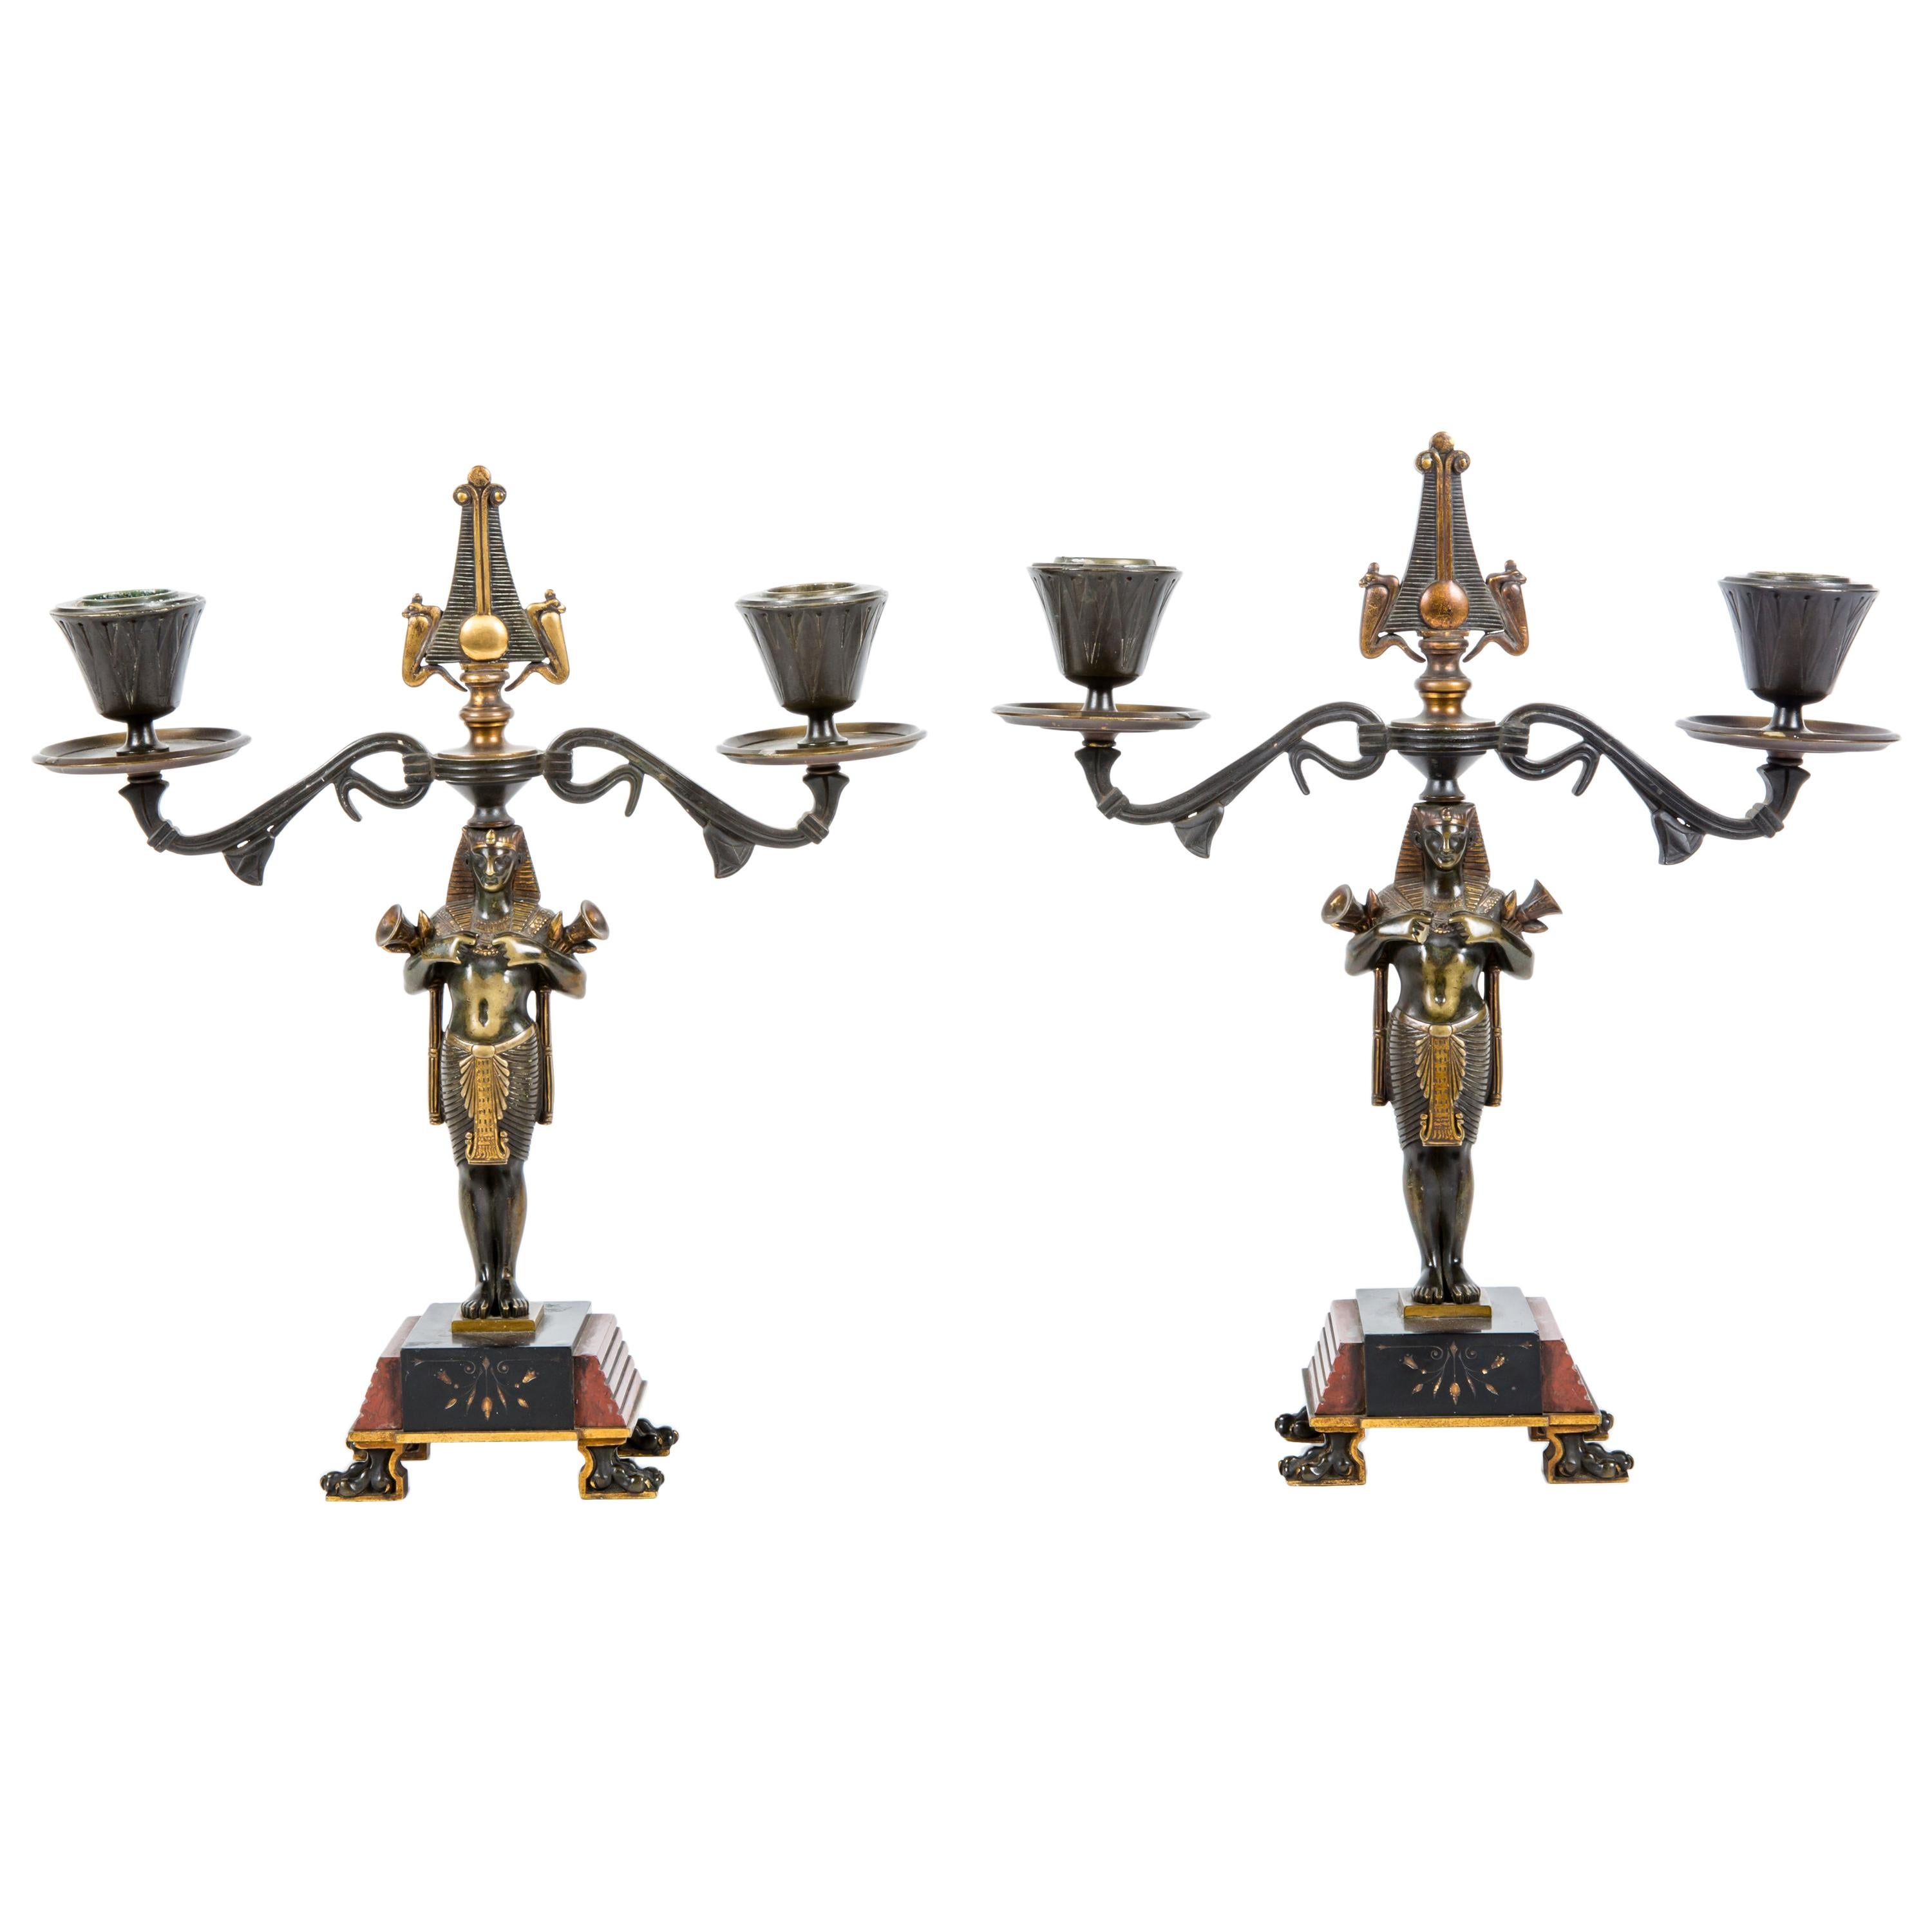 Pair of French Egyptian Revival Figural Candlestick by Ferdinand Barbedienne